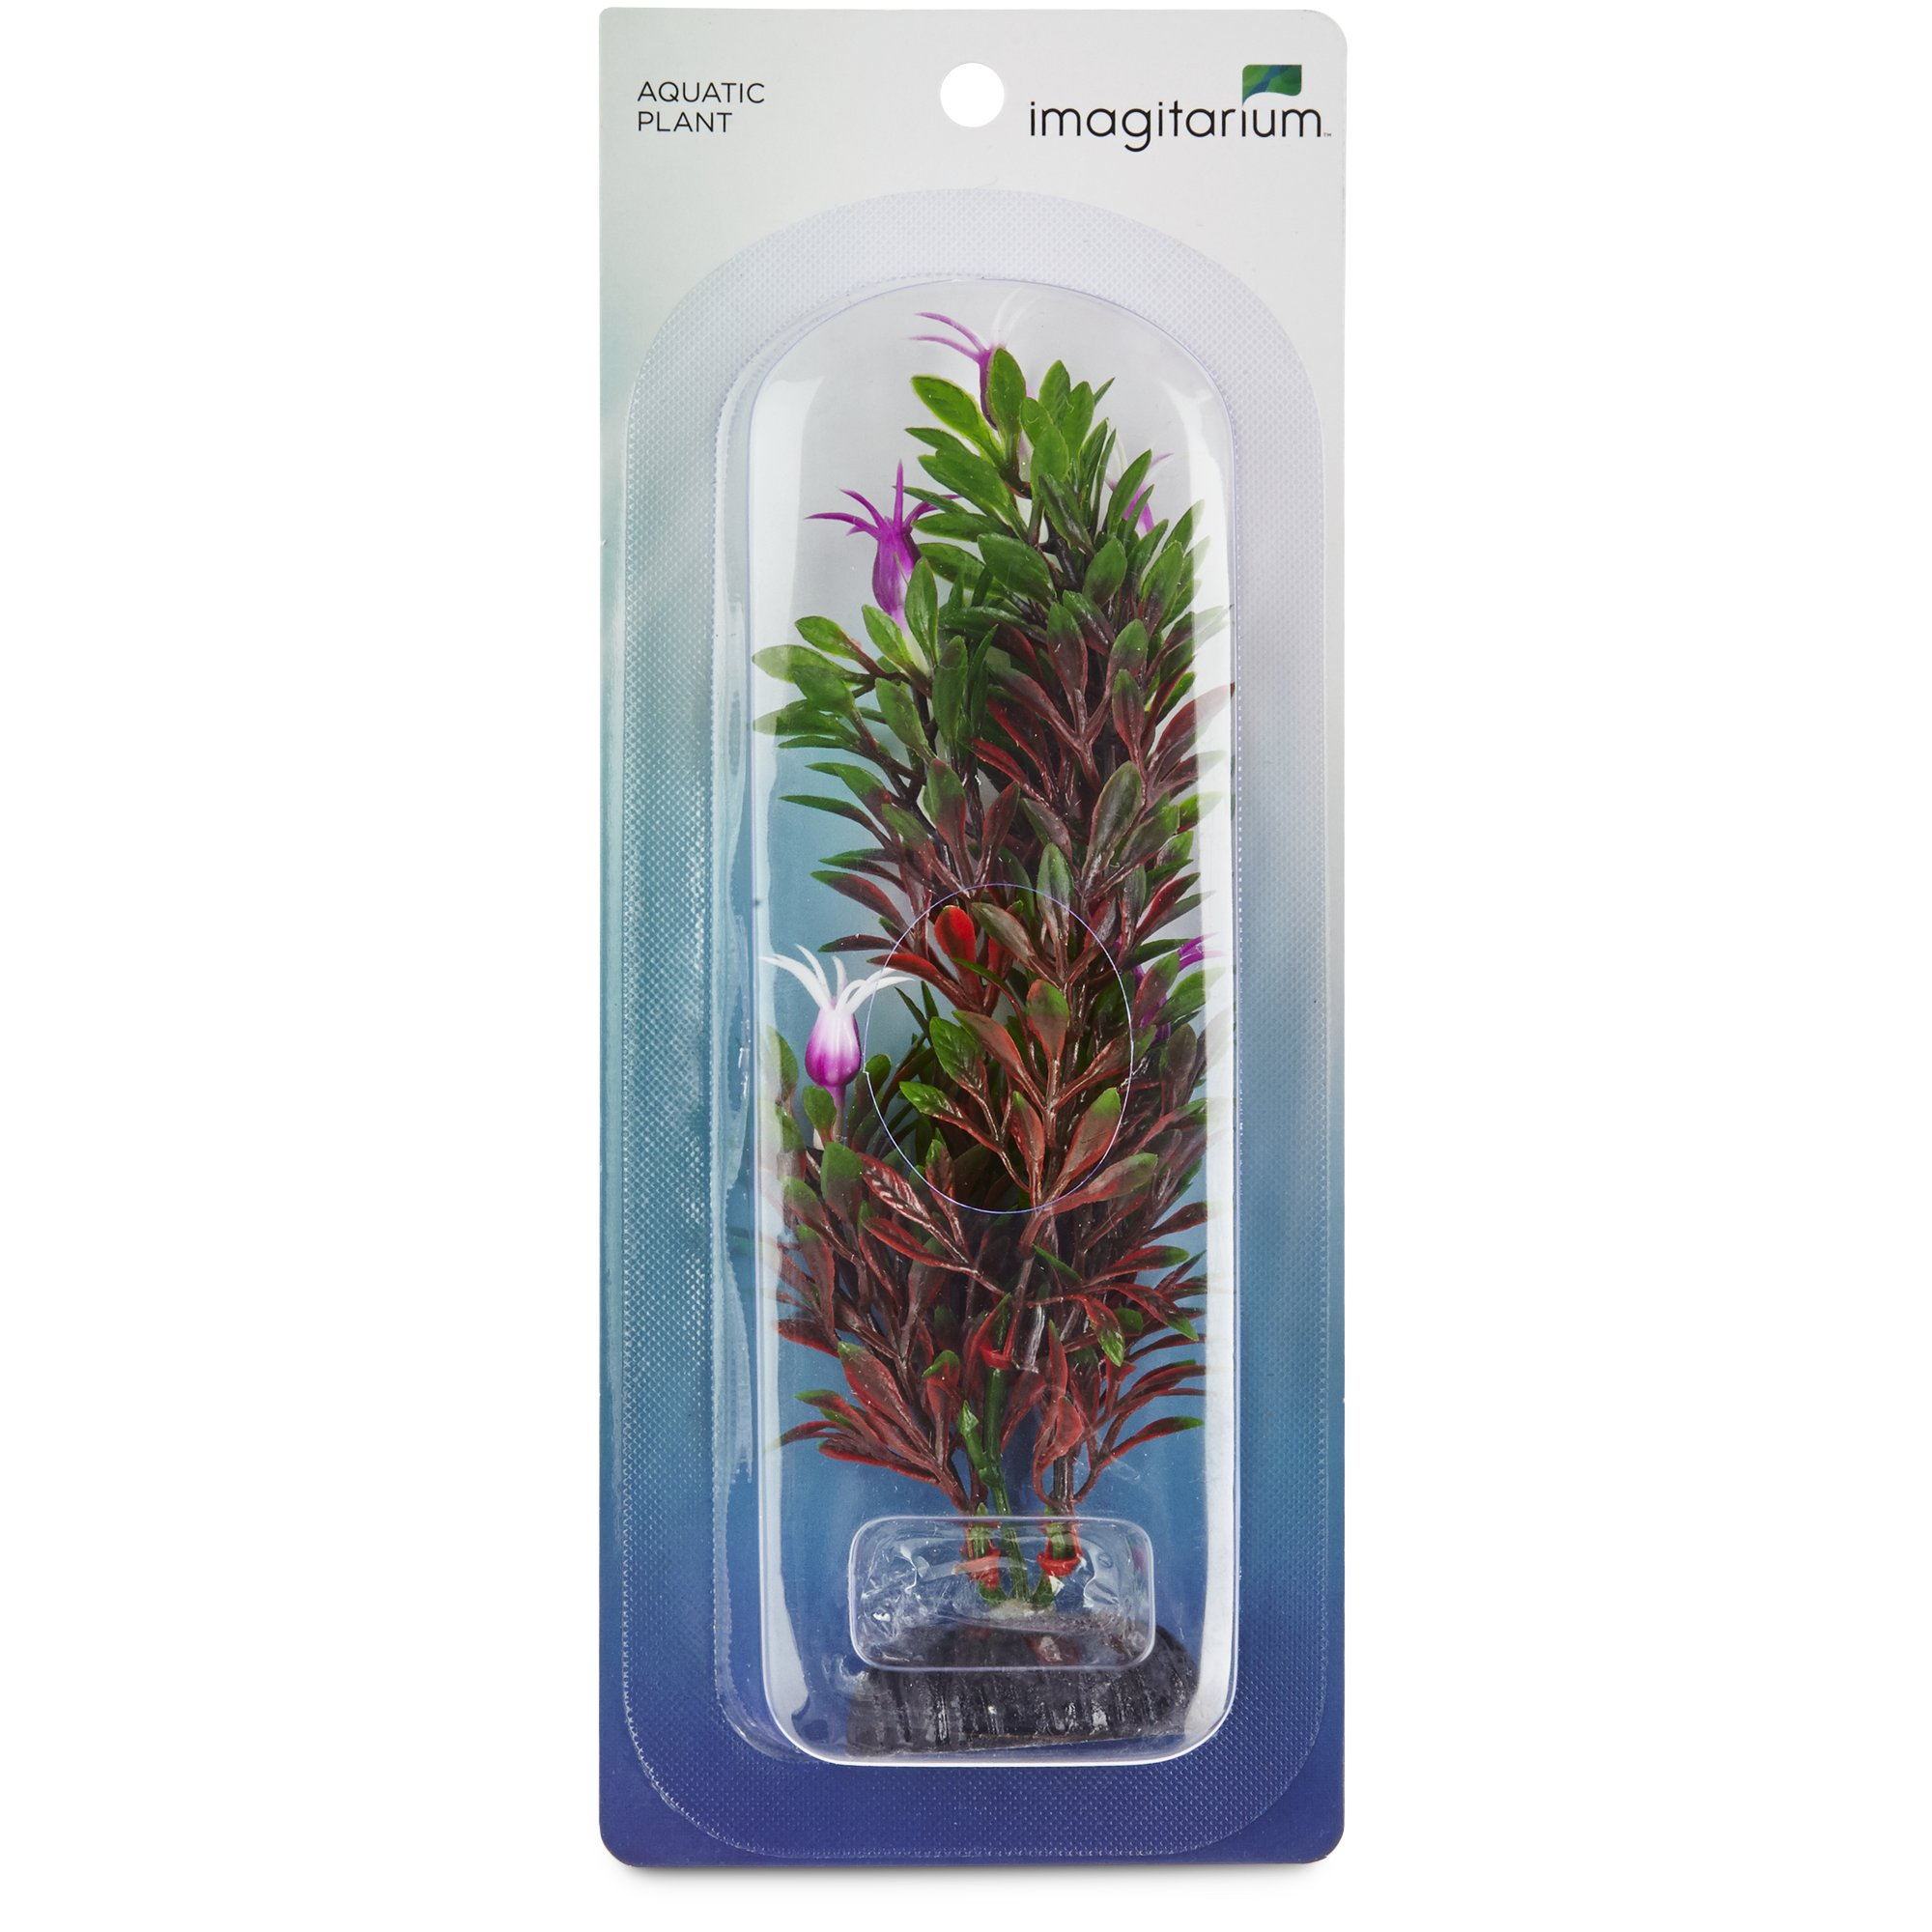 Imagitarium pearl plant aquatic decor petco for Aquatic decoration